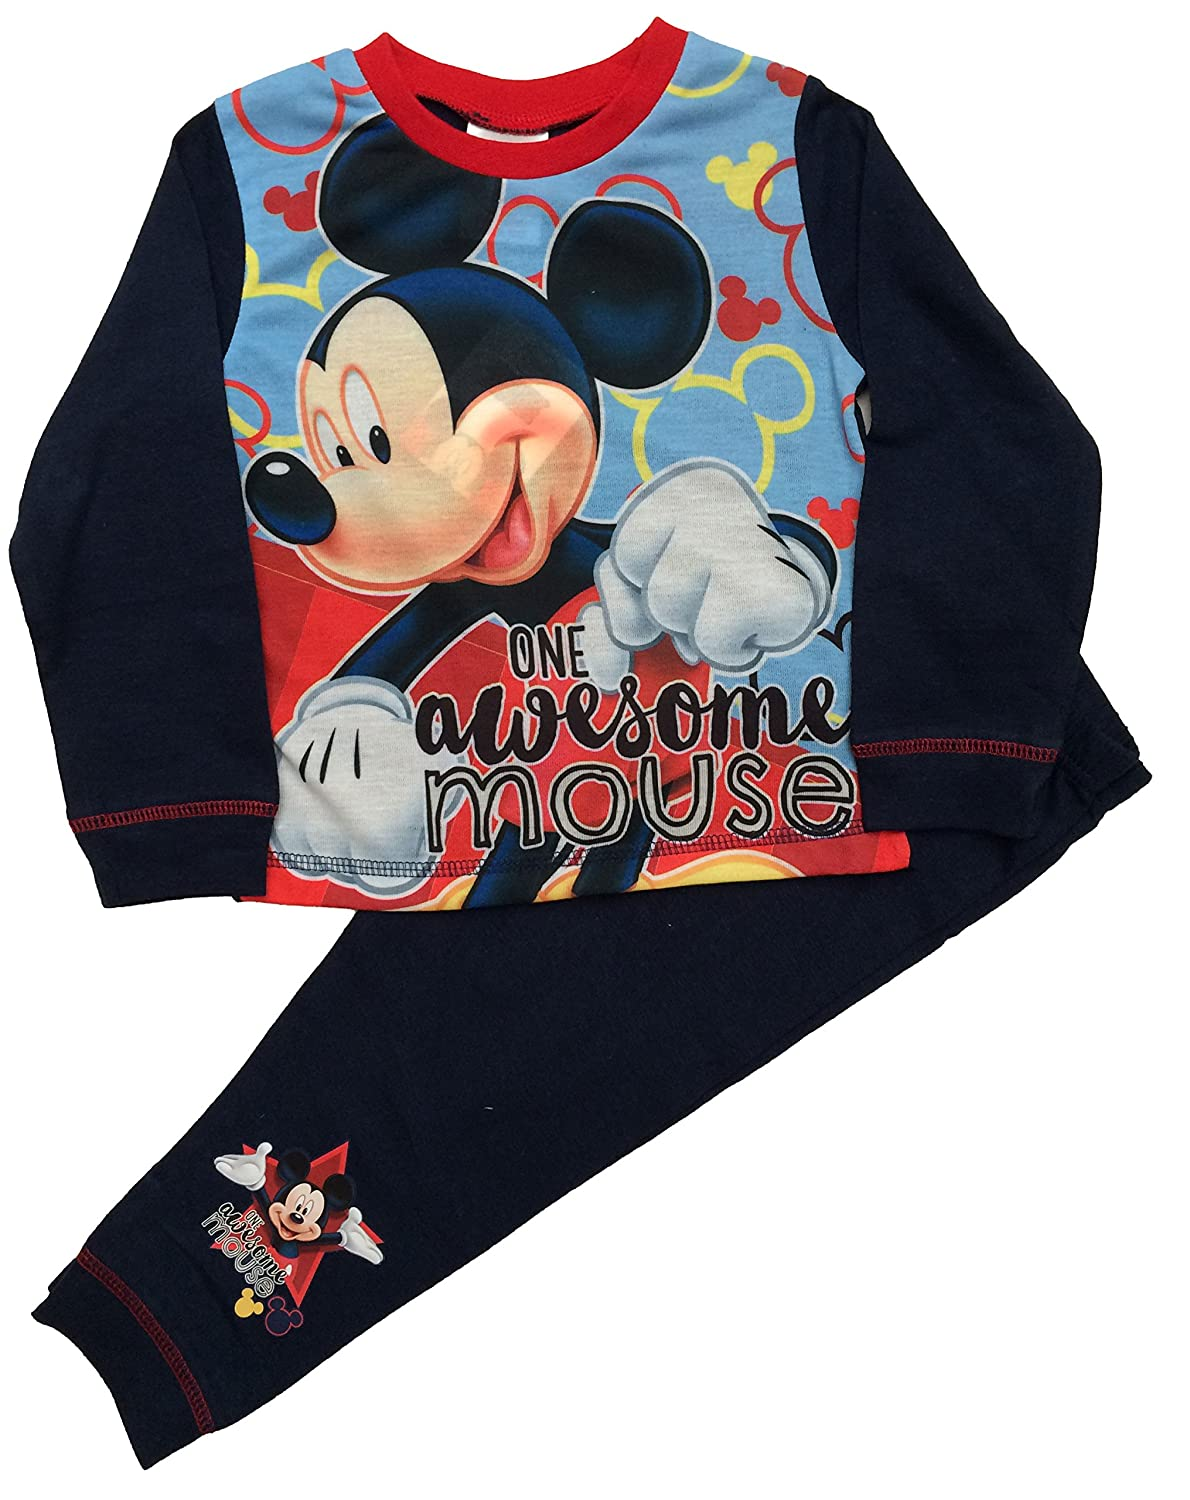 Disney Boys Mickey Mouse Pyjamas PJS Sleepwear Ages 1 To 4 Years